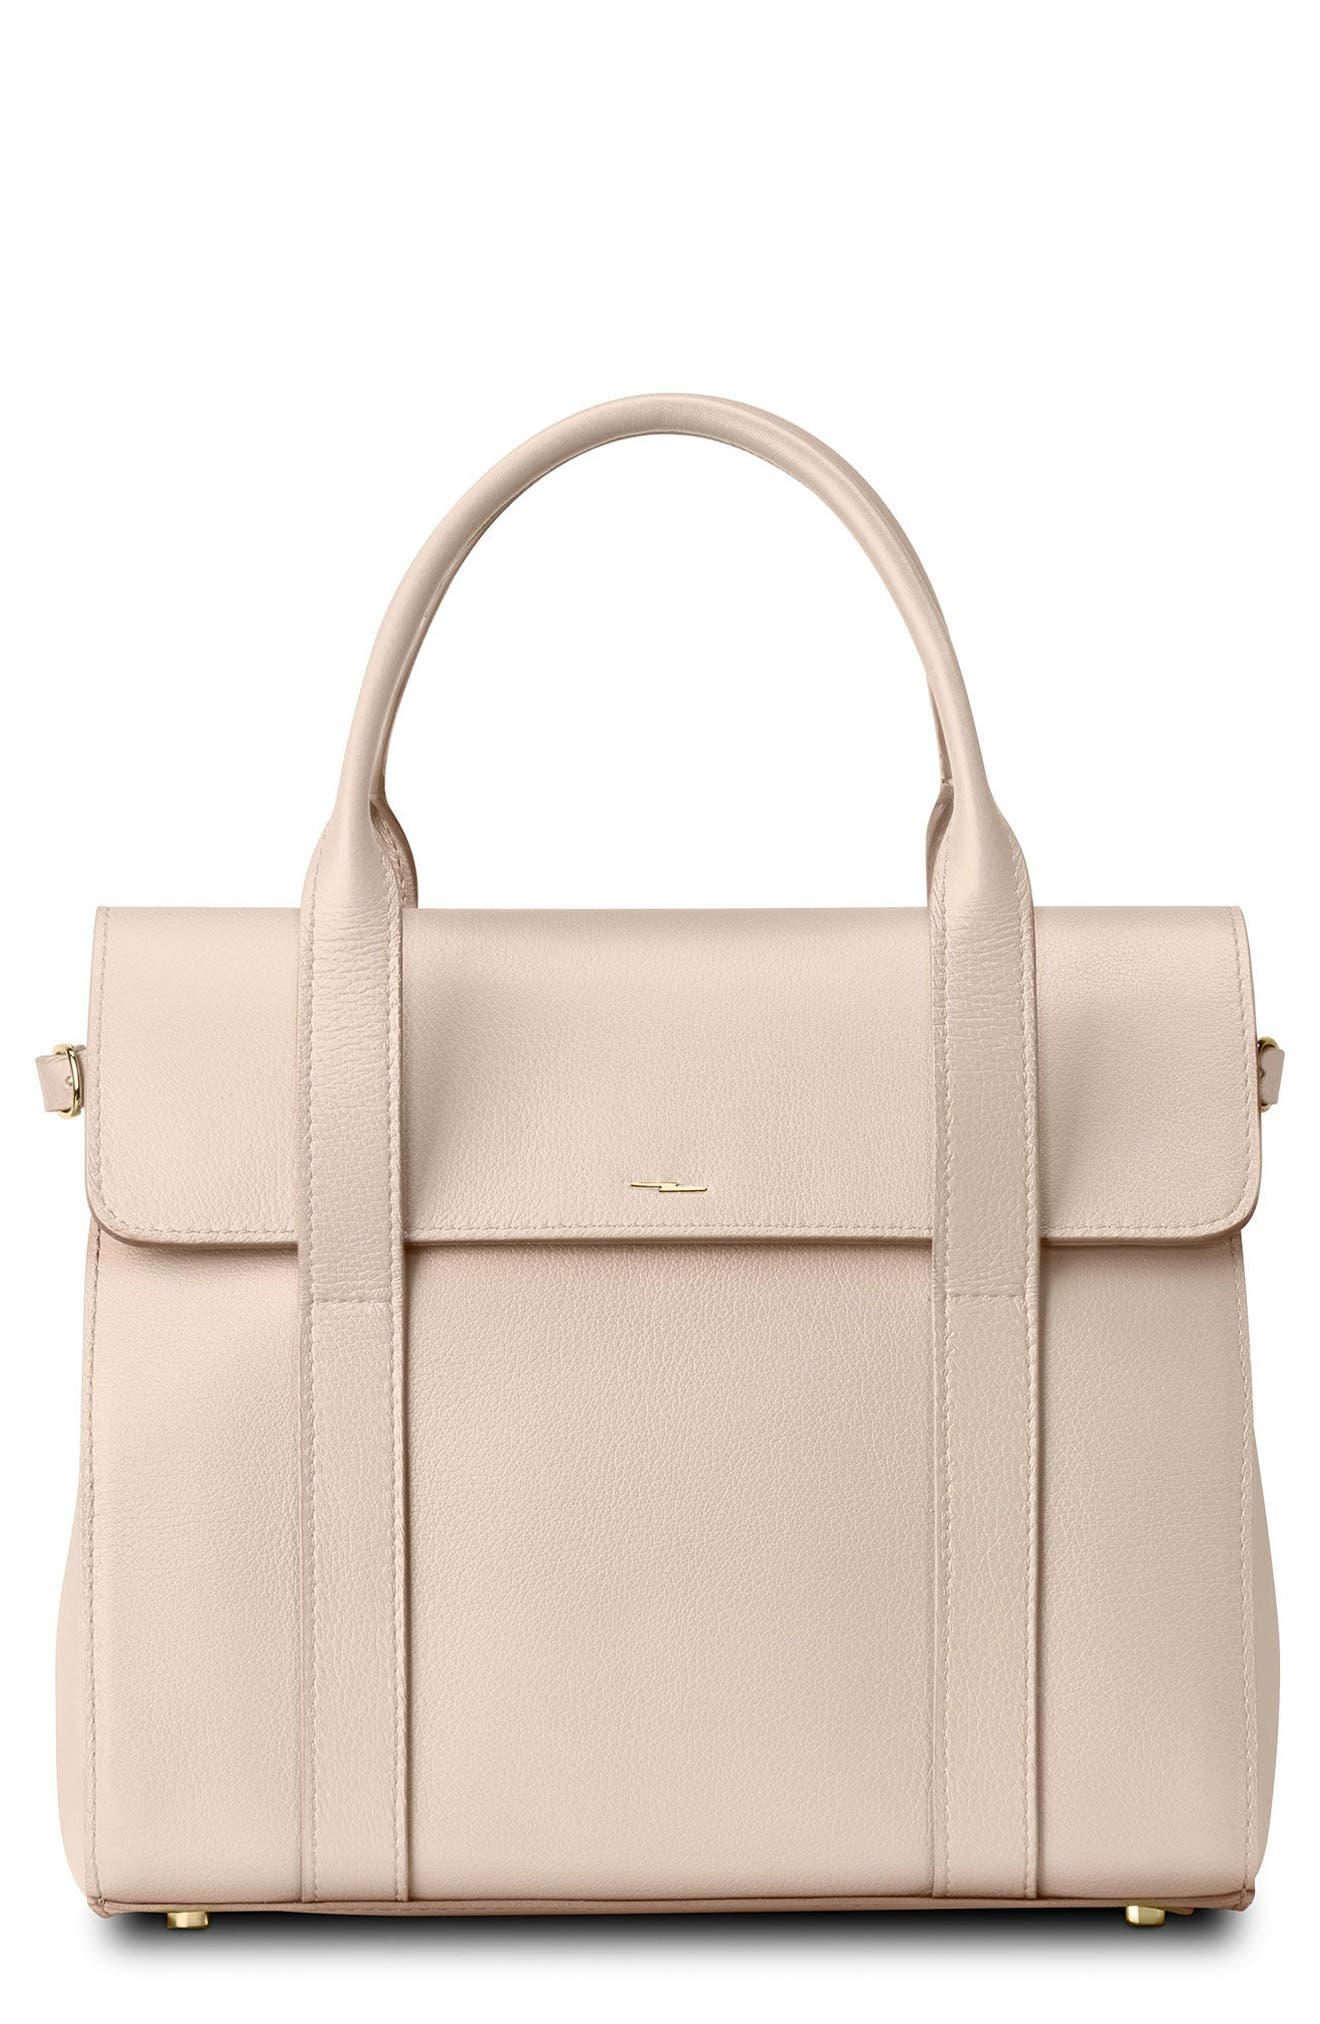 Small Grained Leather Satchel,                         Main,                         color, SOFT BLUSH